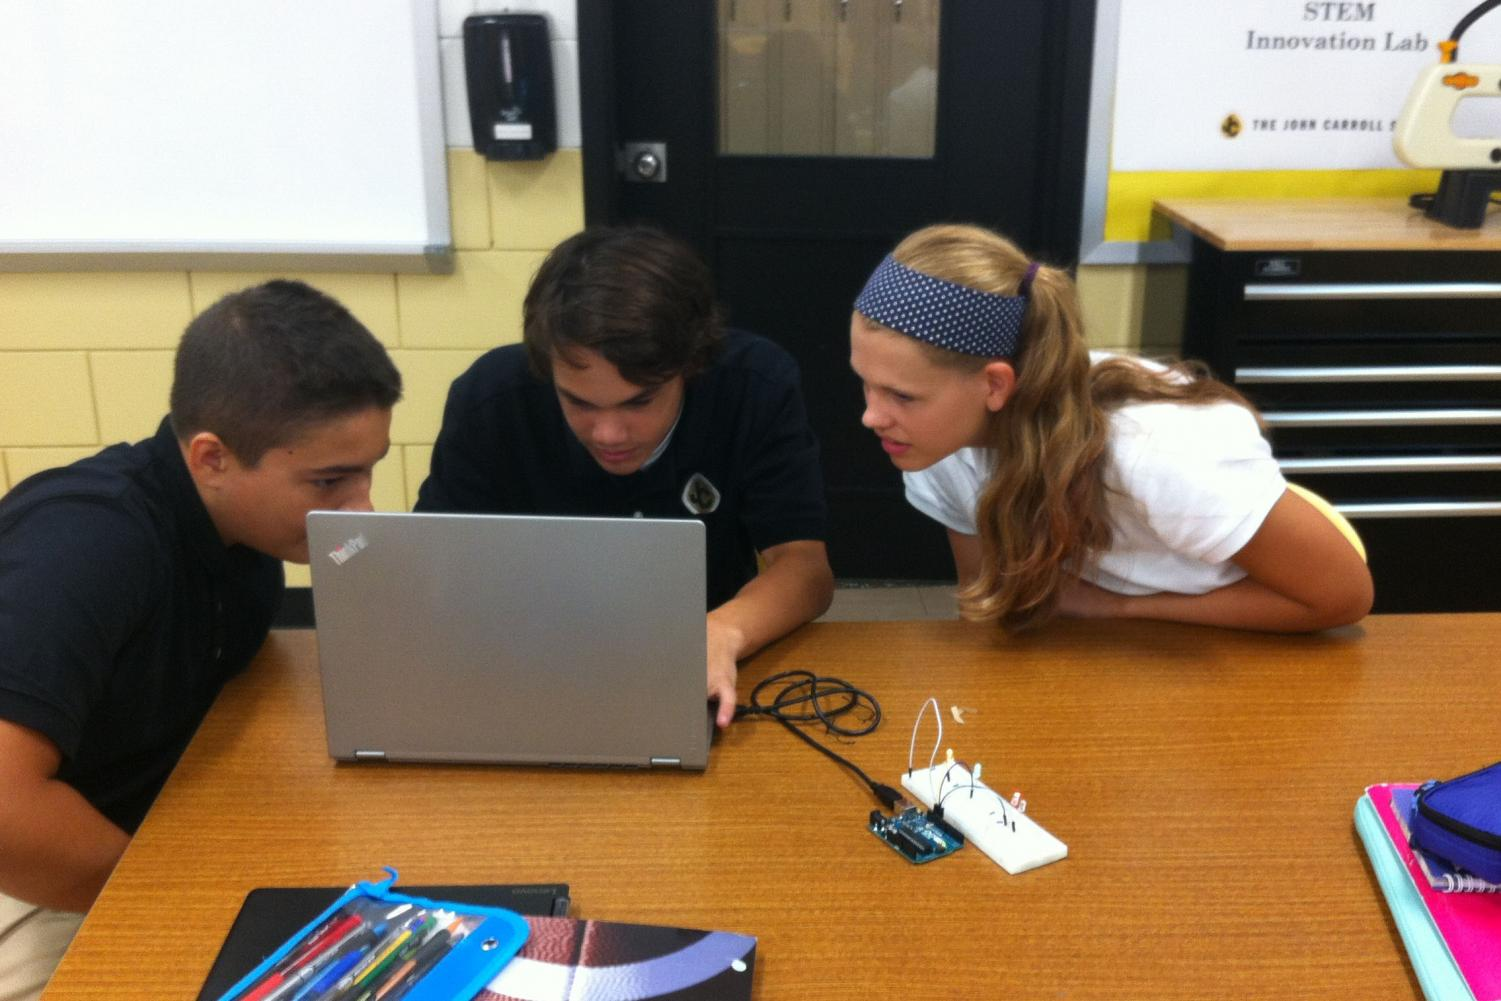 Sophomores Matt Fabiszak, Cole Jones, and Alexis Loder work on an interactive project during their STEM meeting. Having a similar program for humanities would allow students with a strength in the liberal arts to participate in a hands-on program such as this one.